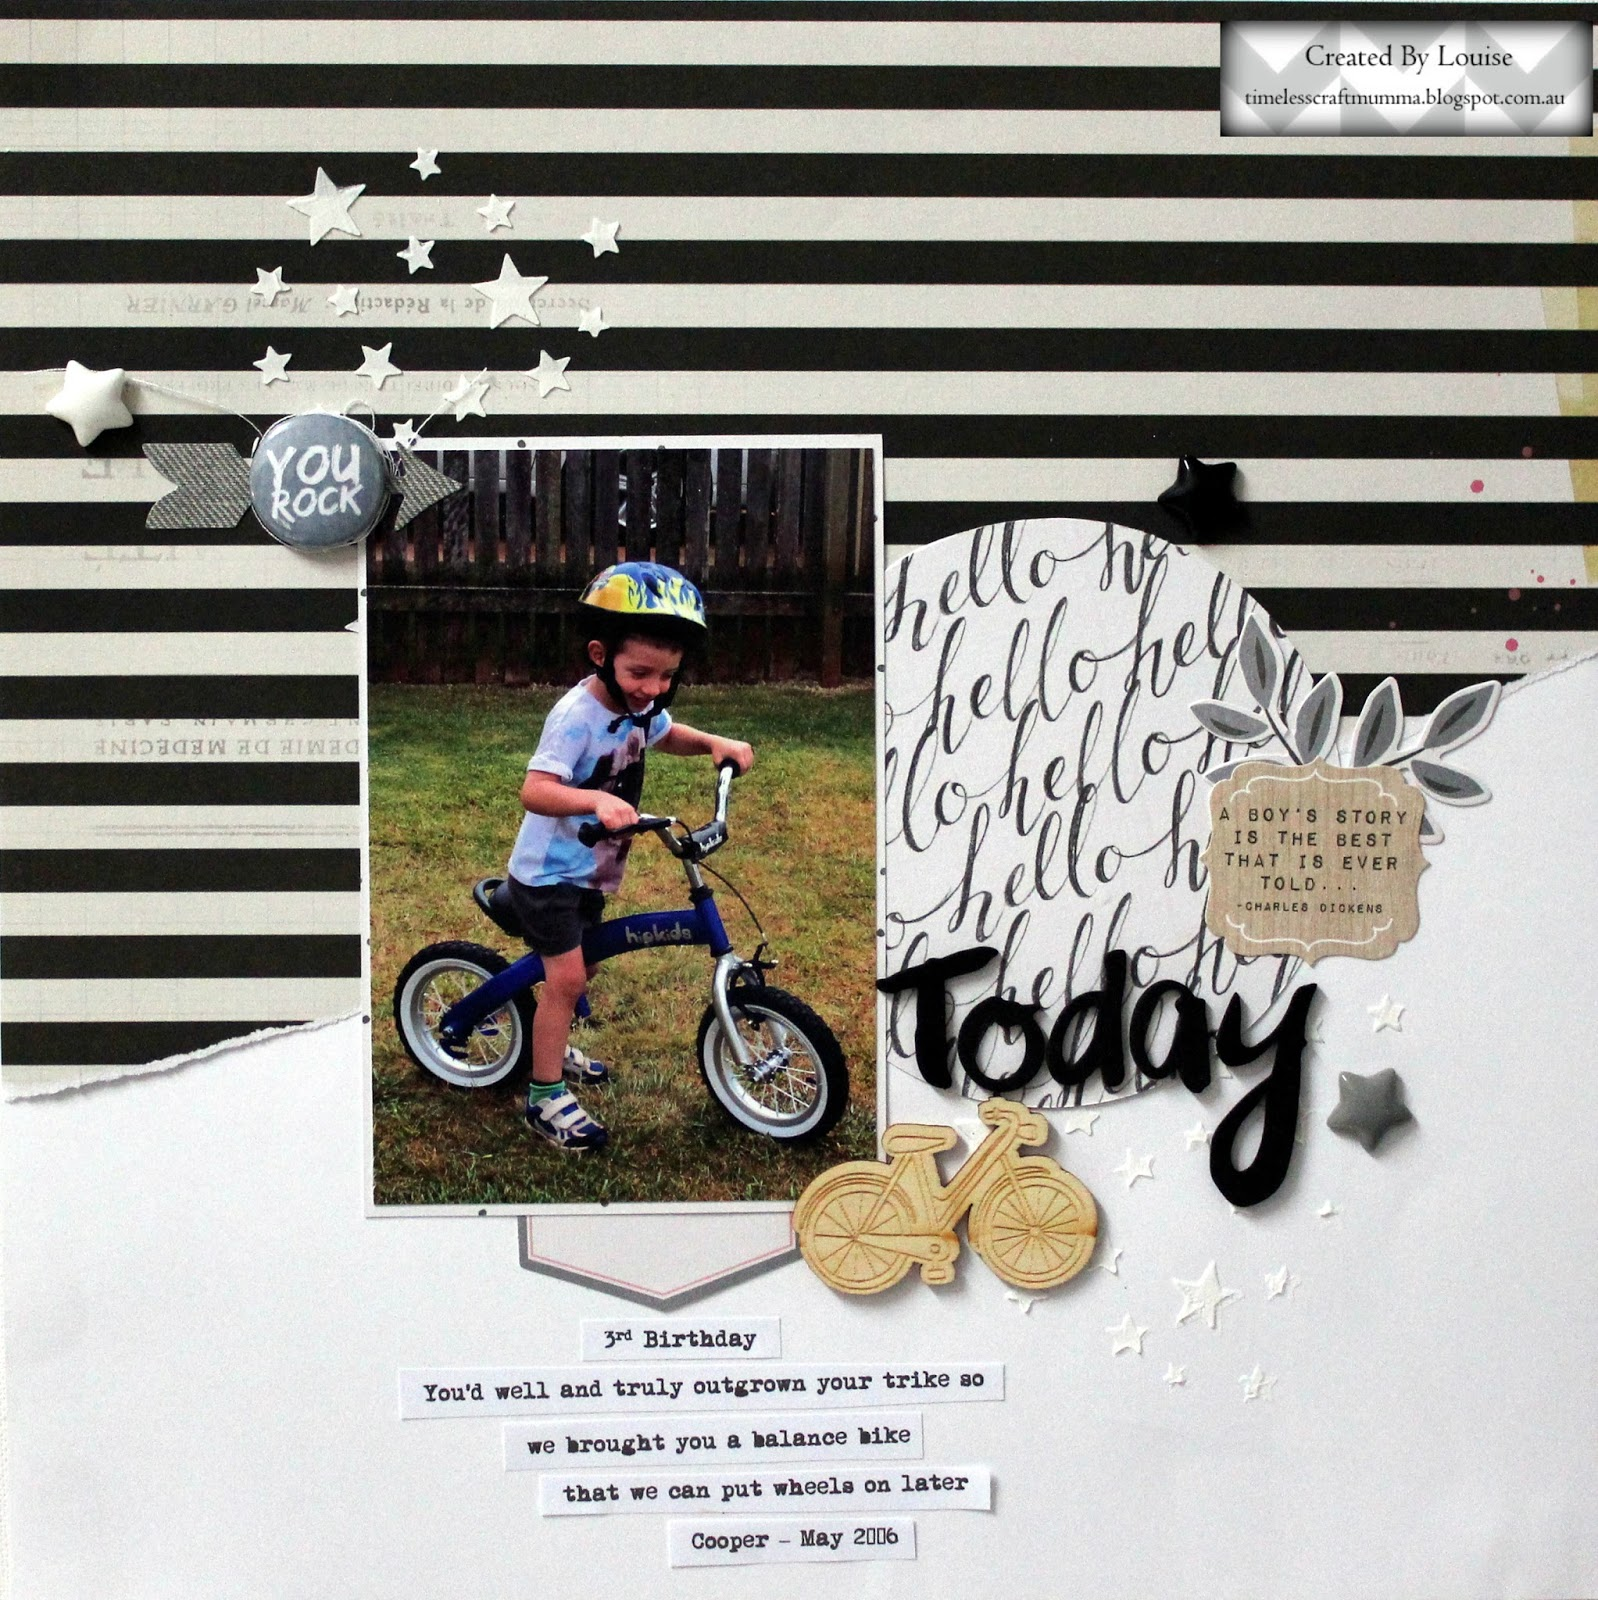 How to delete scrapbook photos google+ - Very Outside My Normal Layout With No Background Colours And Very Little Mixed Media But I Was Chanelling Jot Girl Sheree Forcier With This Layout And